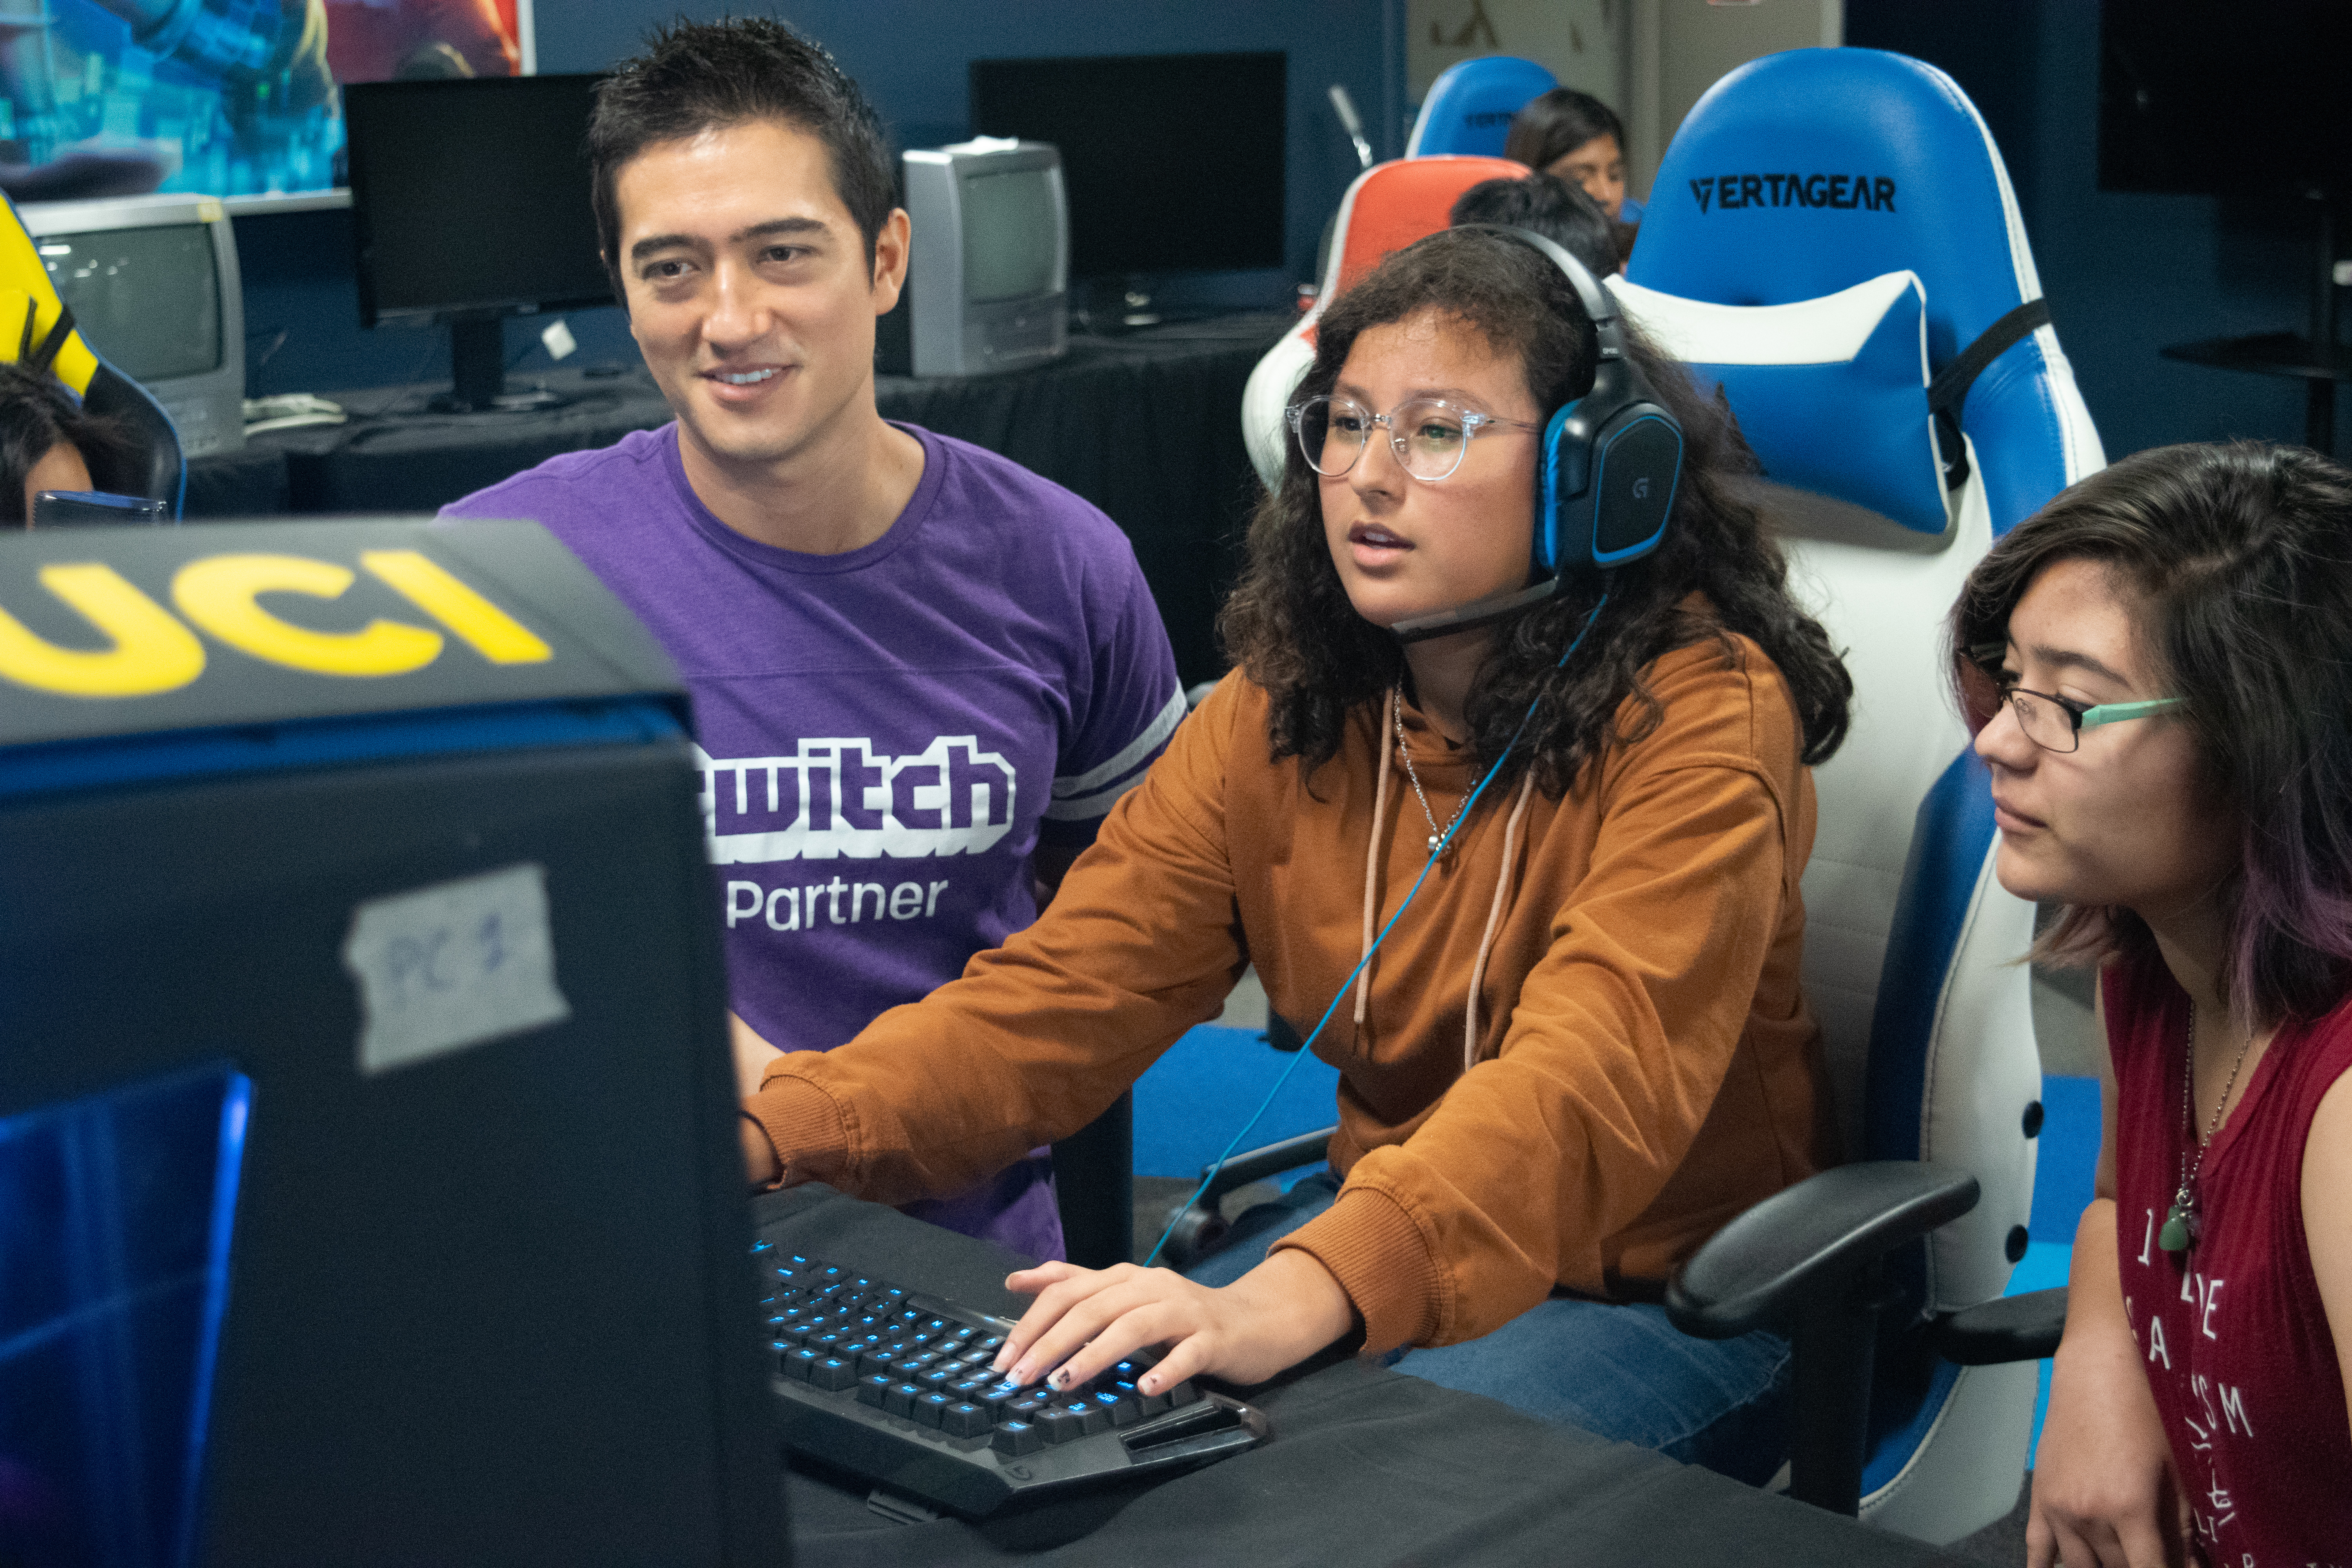 During the 2018 Esports Access Camp, students got to learn new game titles, including Overwatch!